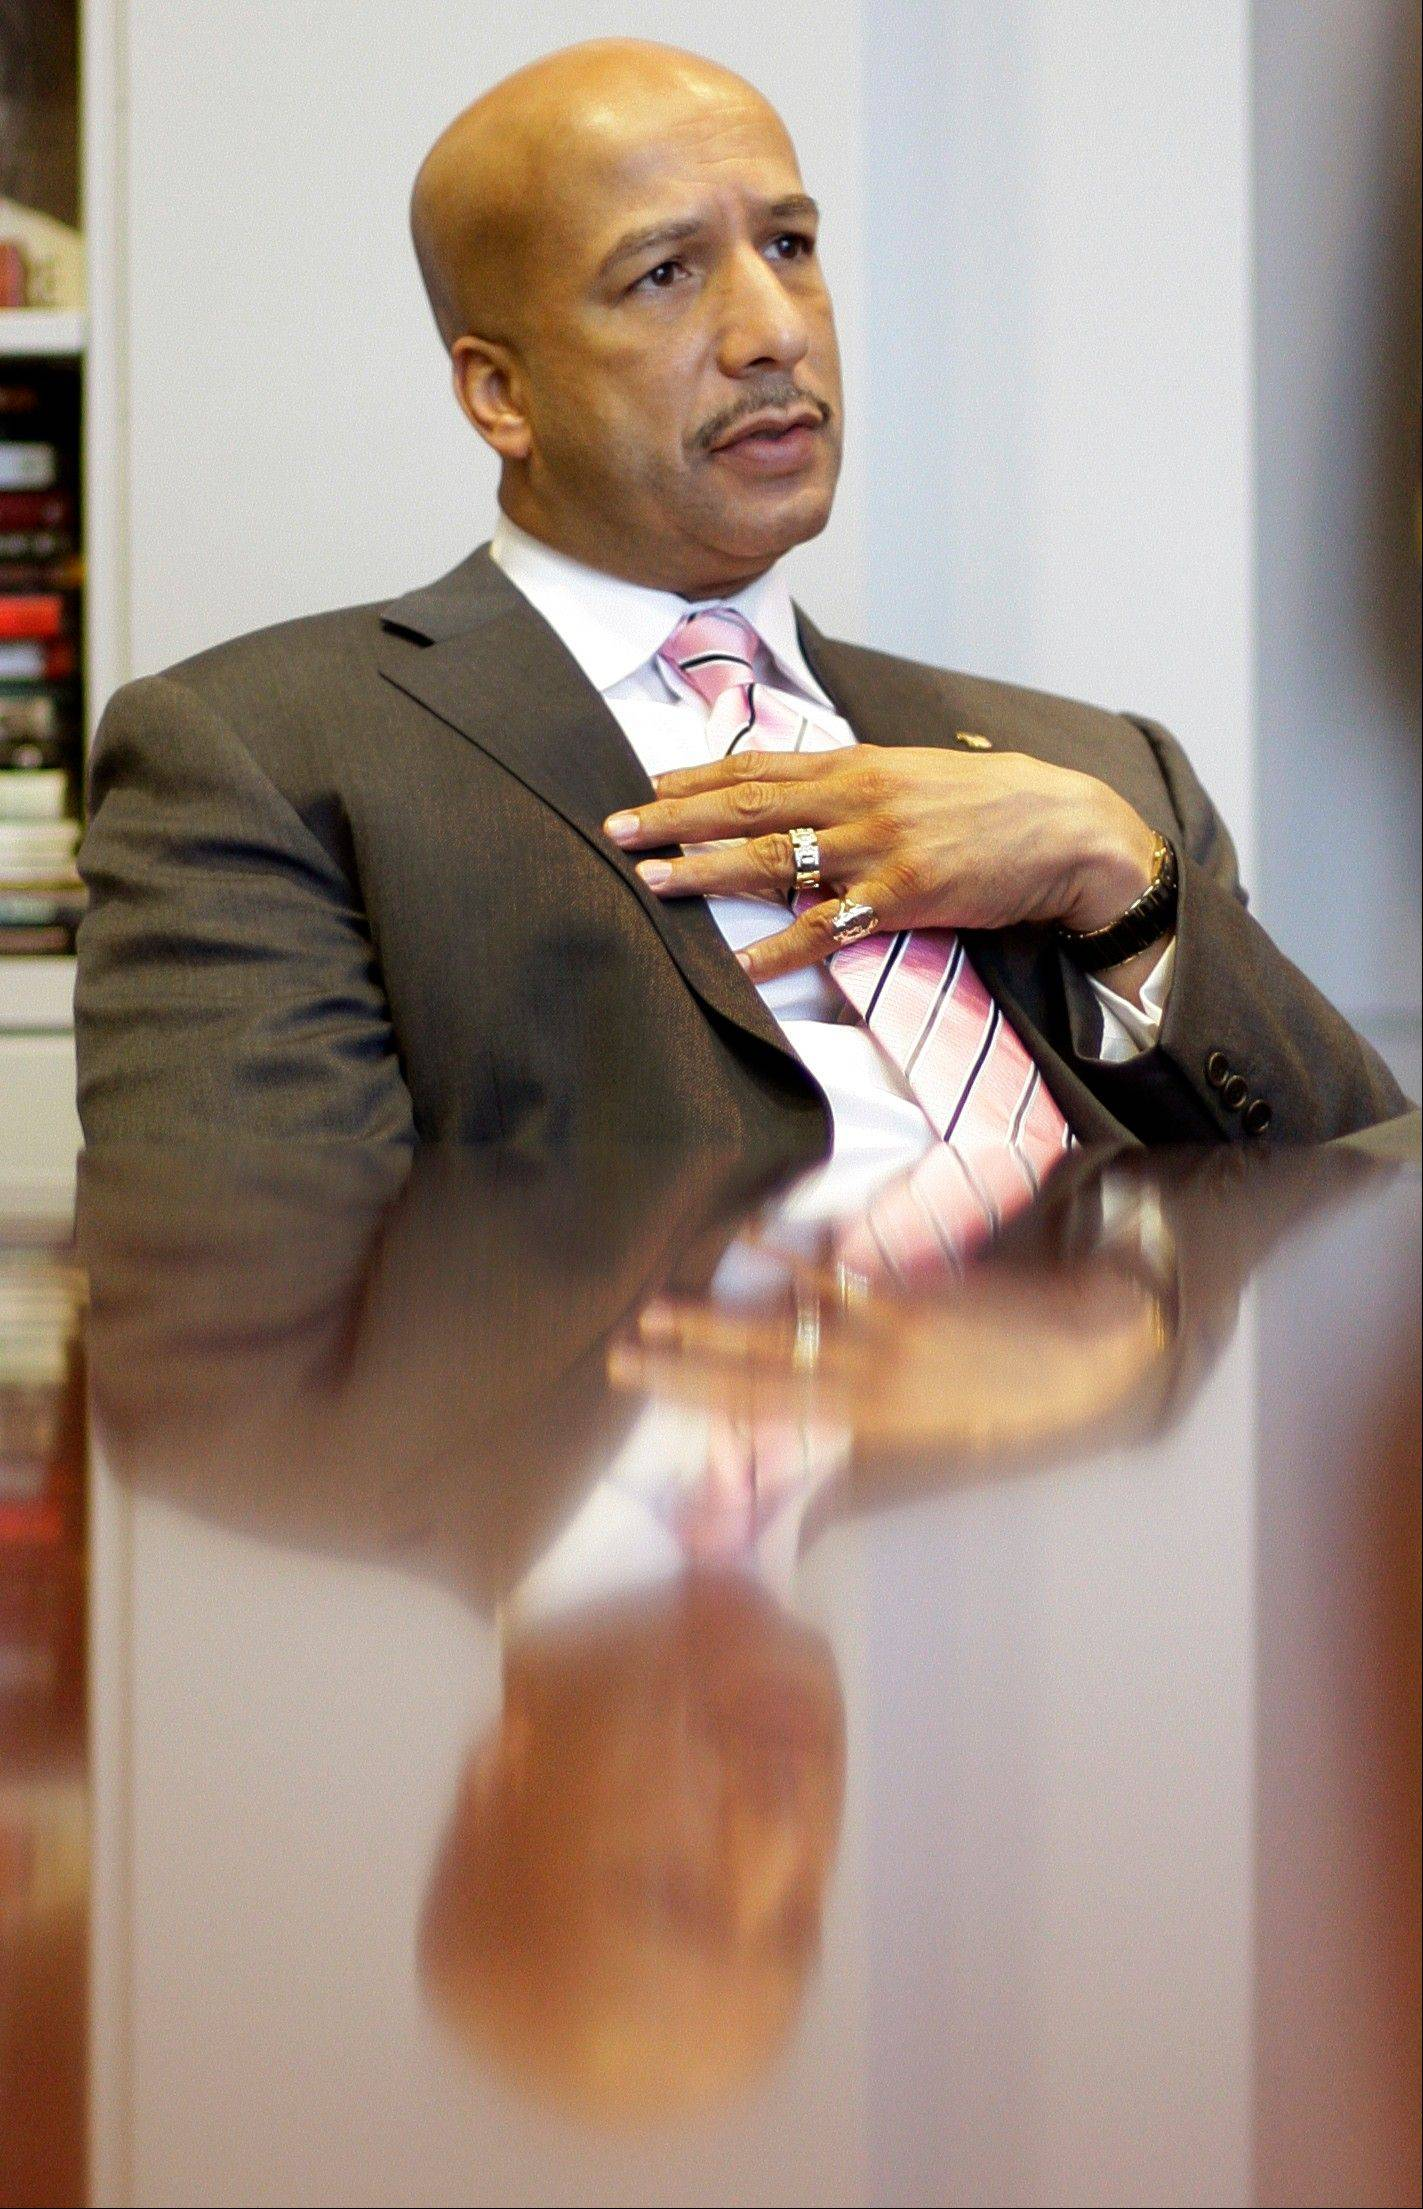 Associated Press/Dec. 23, 2008 Then-New Orleans Mayor Ray Nagin speaks during an interview in his office at City Hall in New Orleans.